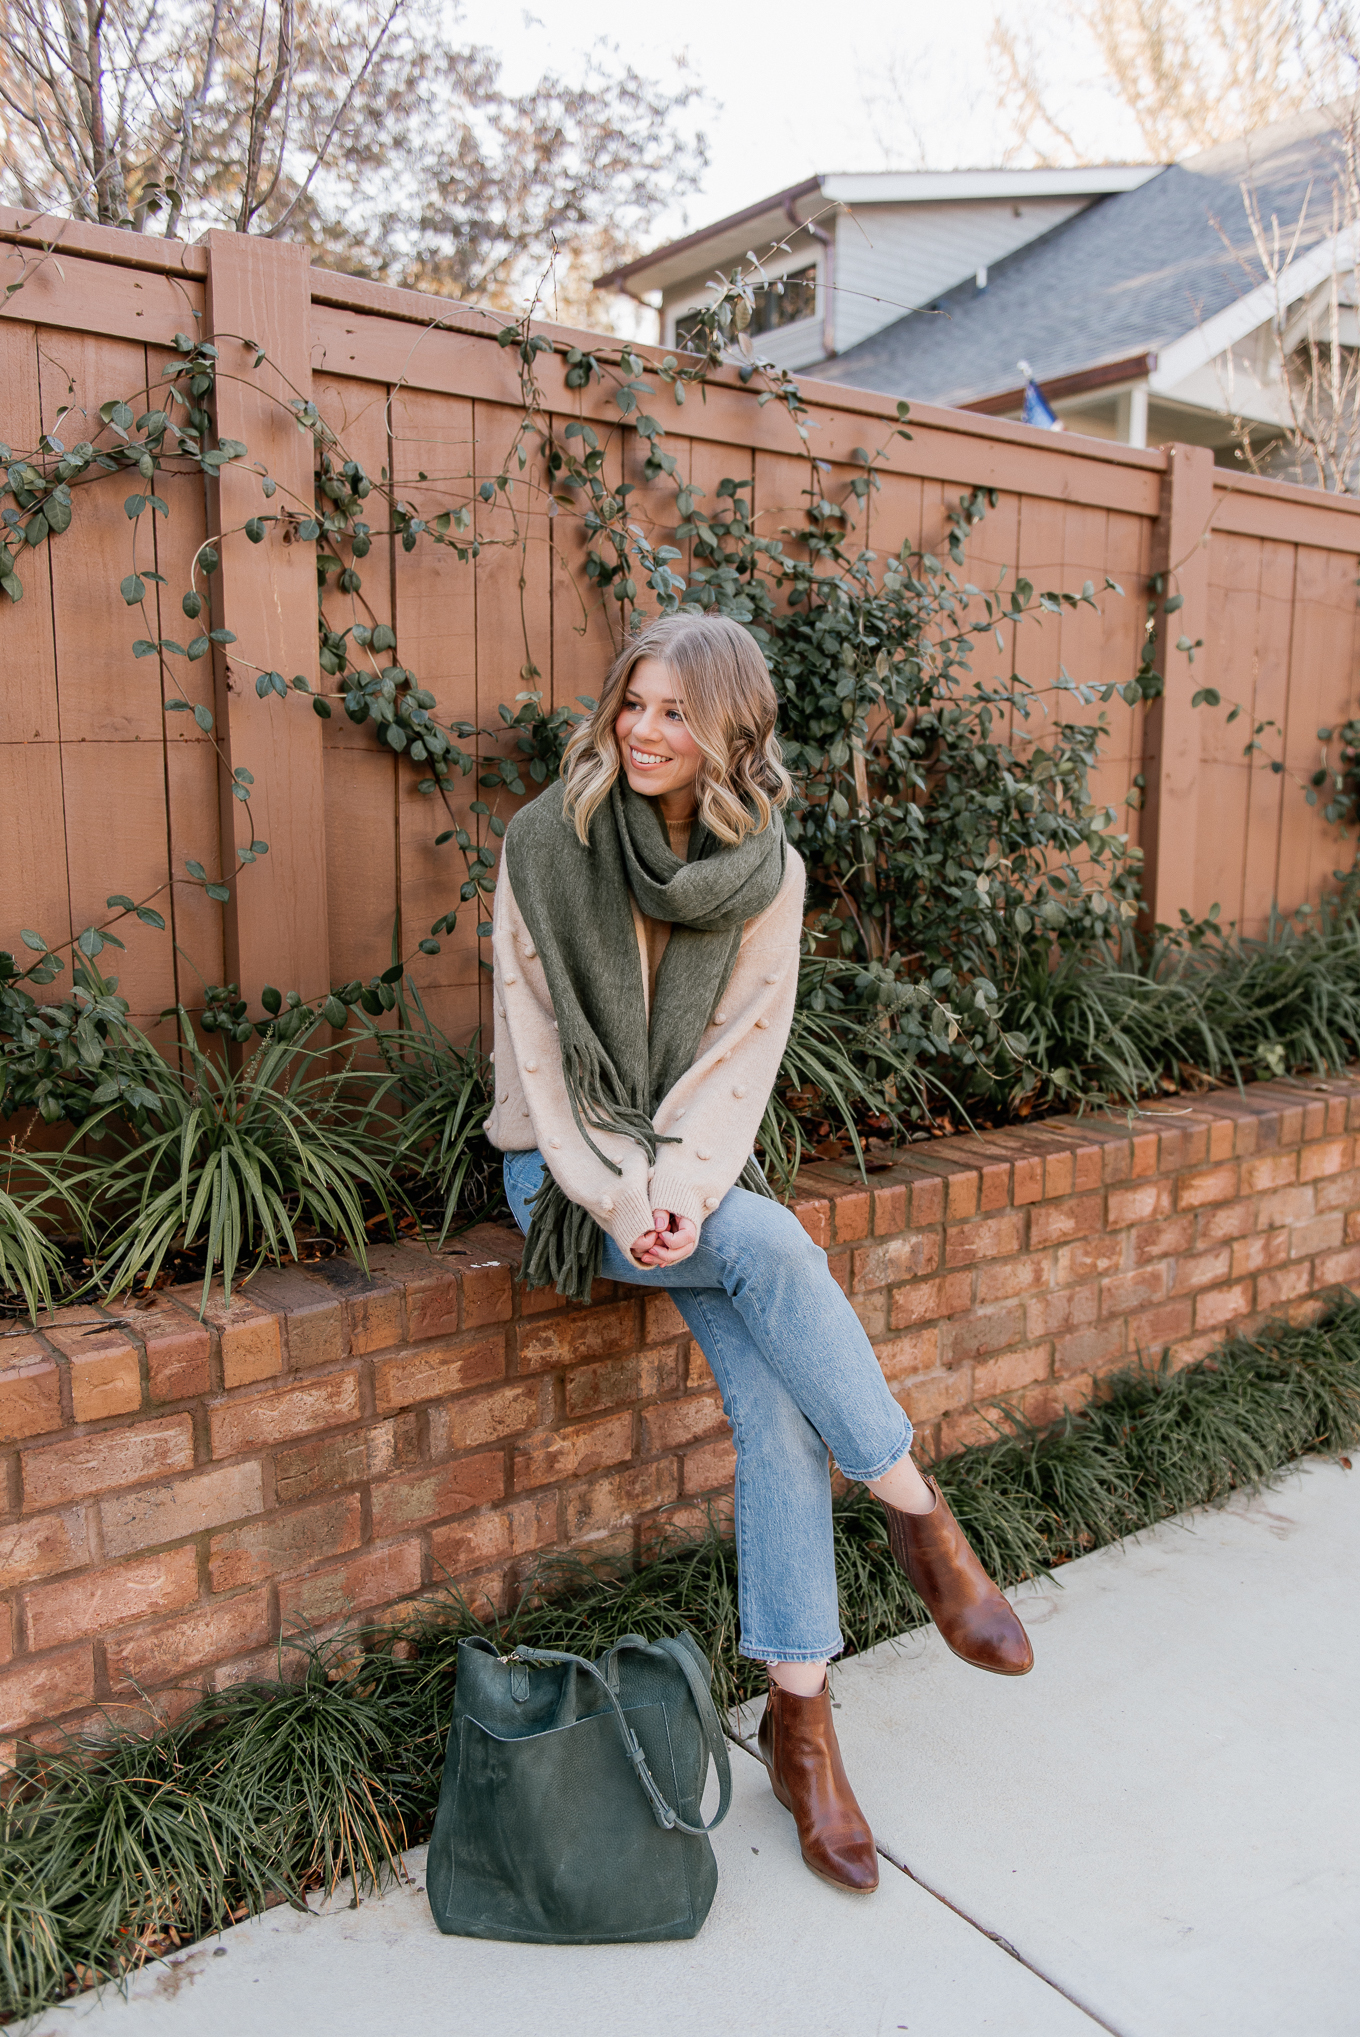 20 Things I want to Make Happen in 2020 | 2020 Goals | Olive Scarf, Pom-Pom Sweater | Louella Reese